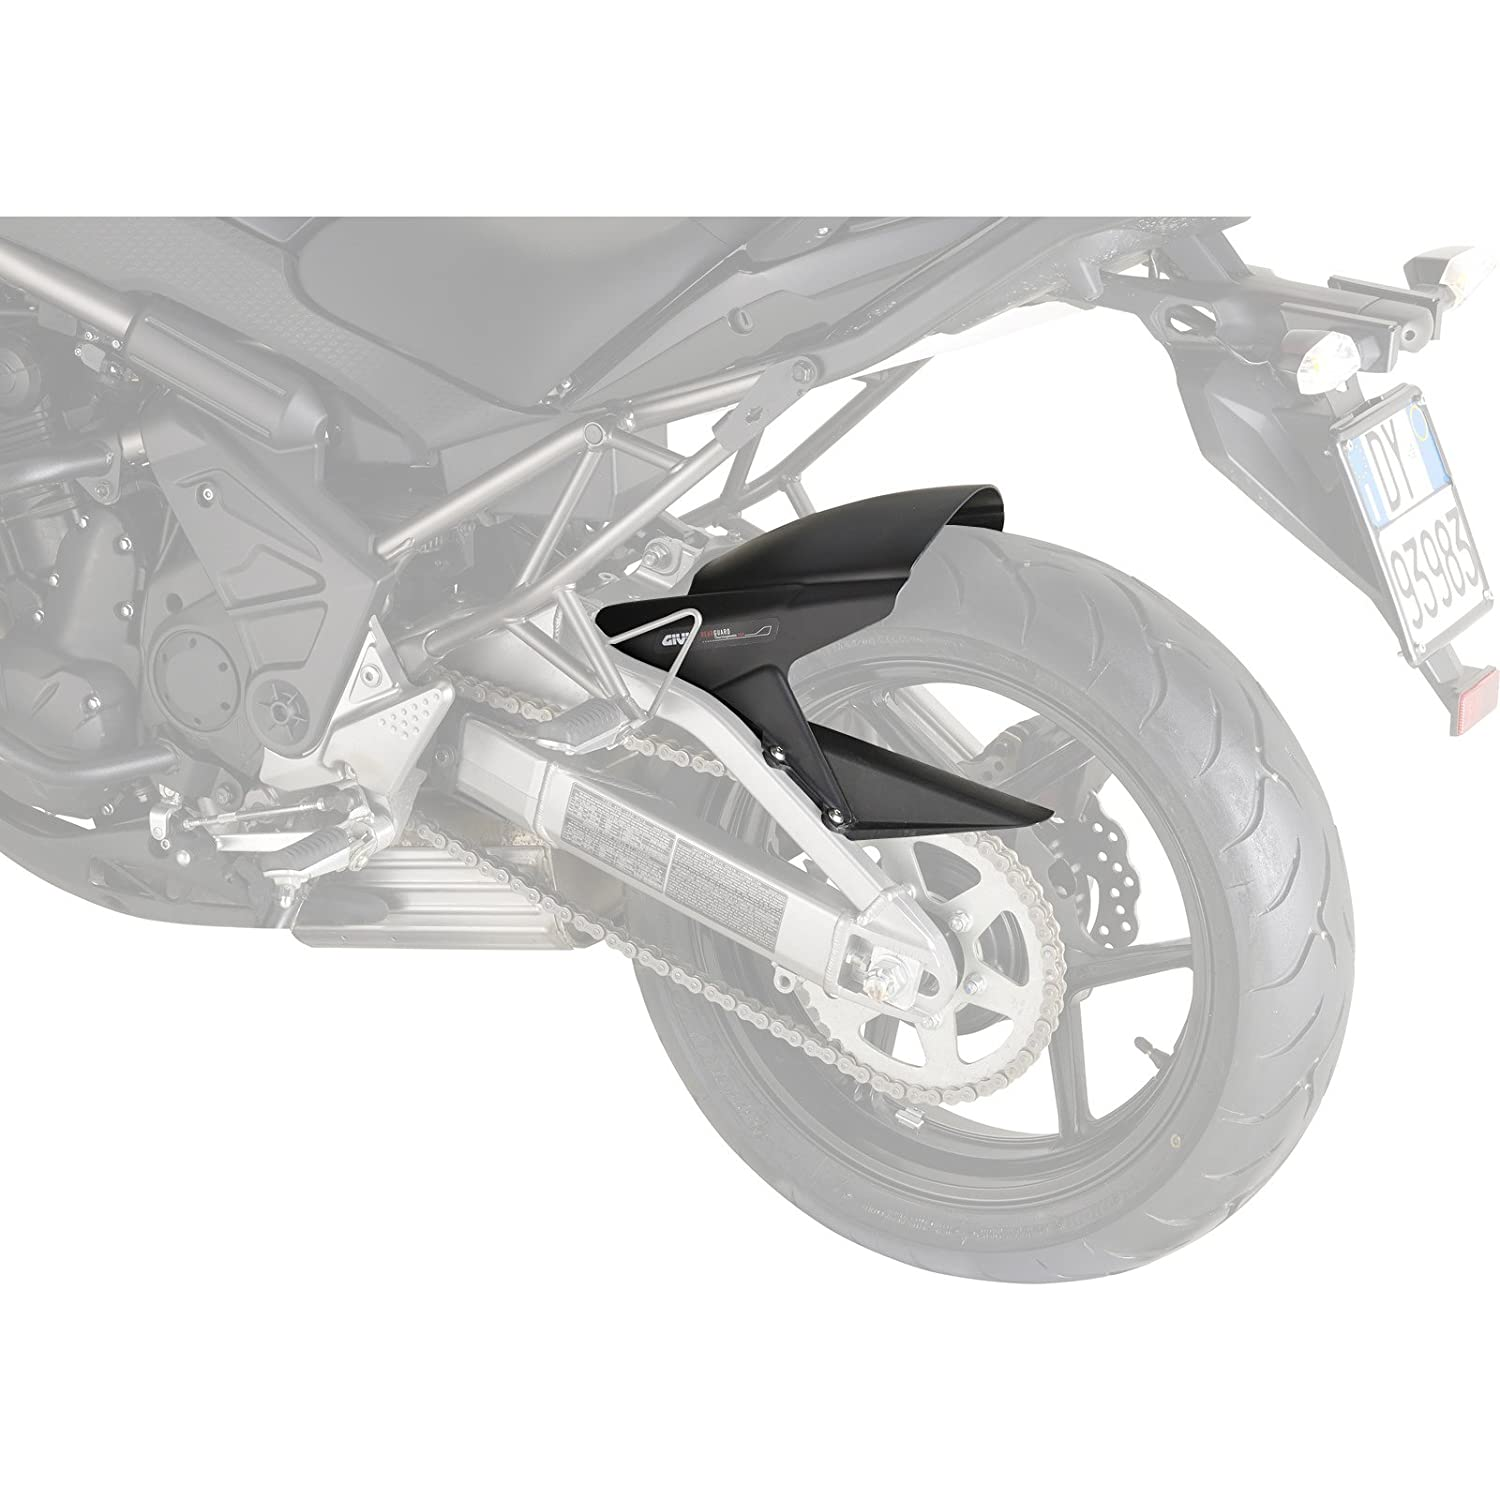 Givi Mud Guard Kawasaki Versys 650 10-15 (MG4103)